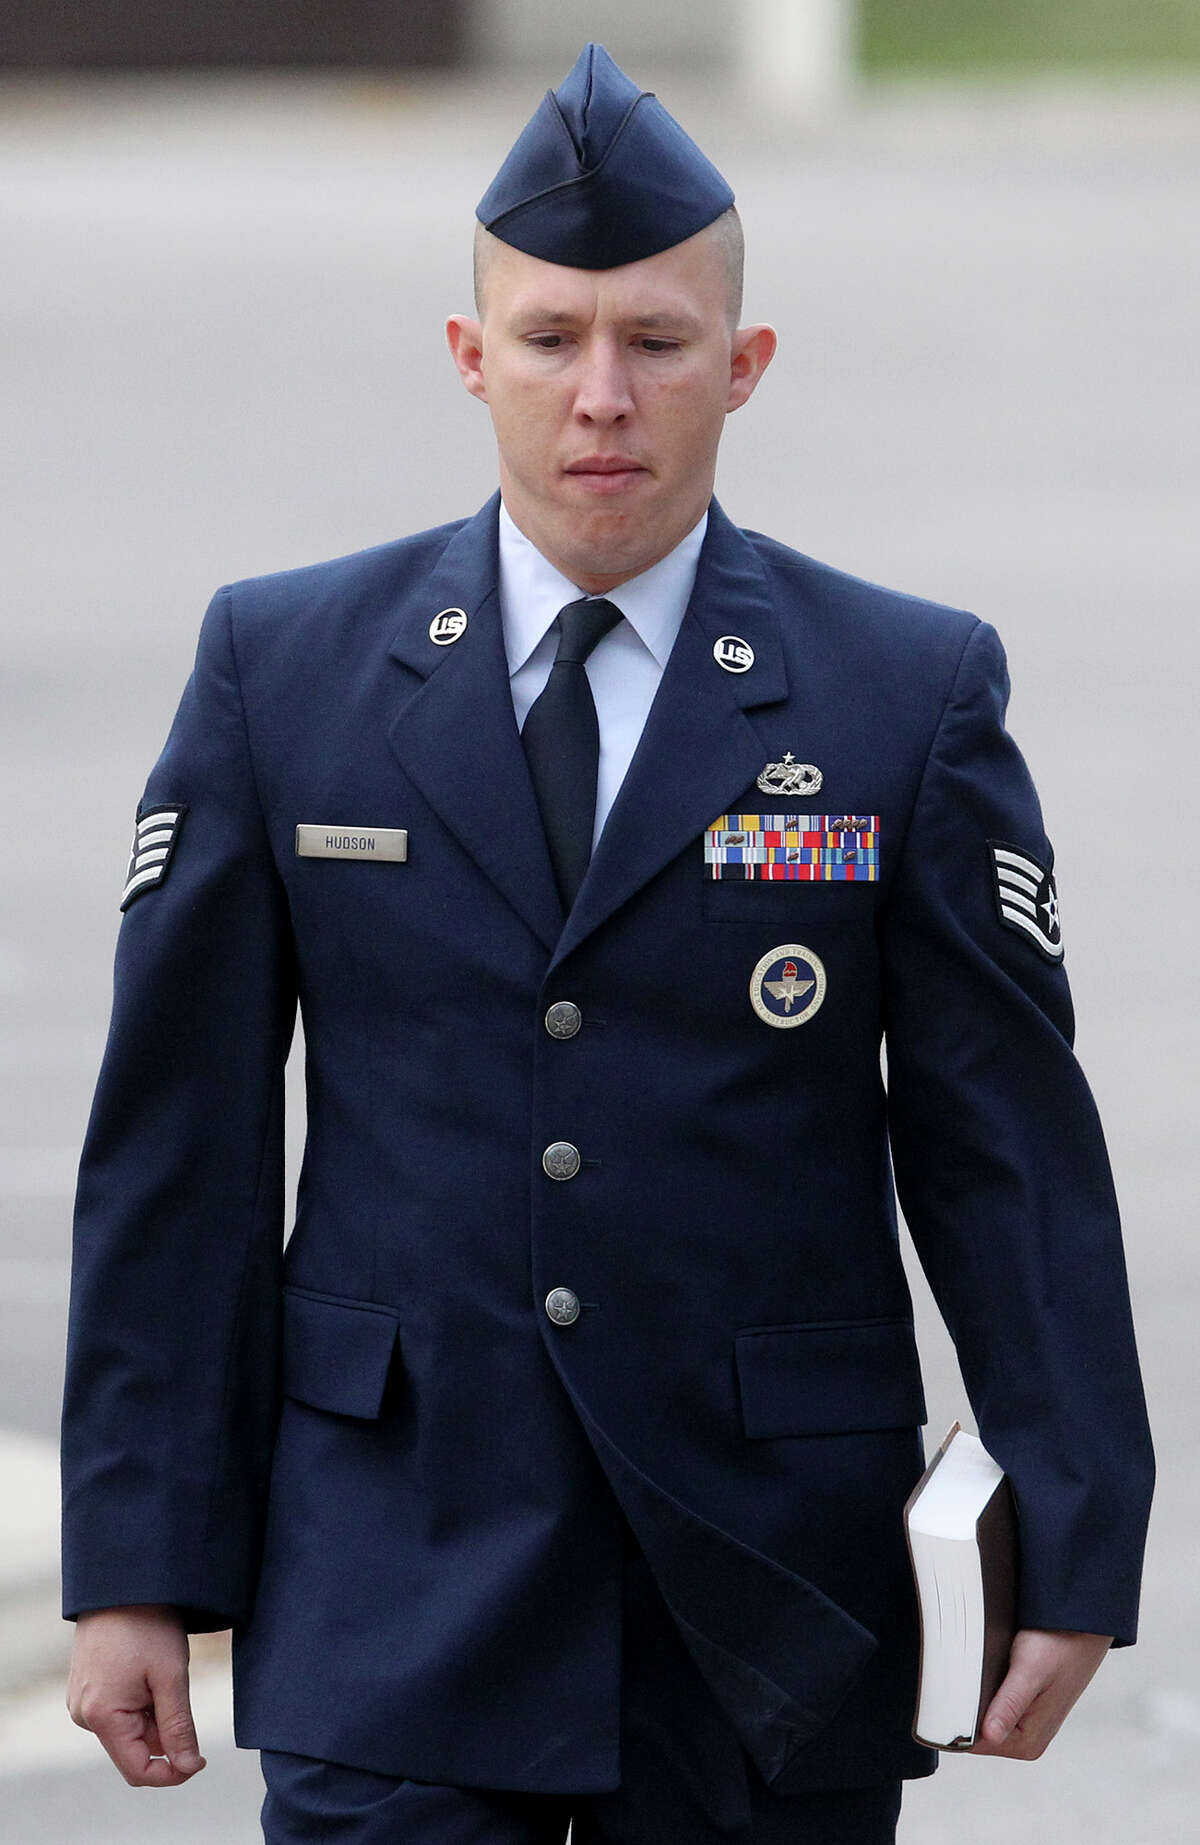 U.S. Air Force Staff Sergeant Robert Hudson walks at Joint Base San Antonio-Lackland Thursday April 25, 2013. The training instructor is accused of having sex with a technical school trainee and other charges.